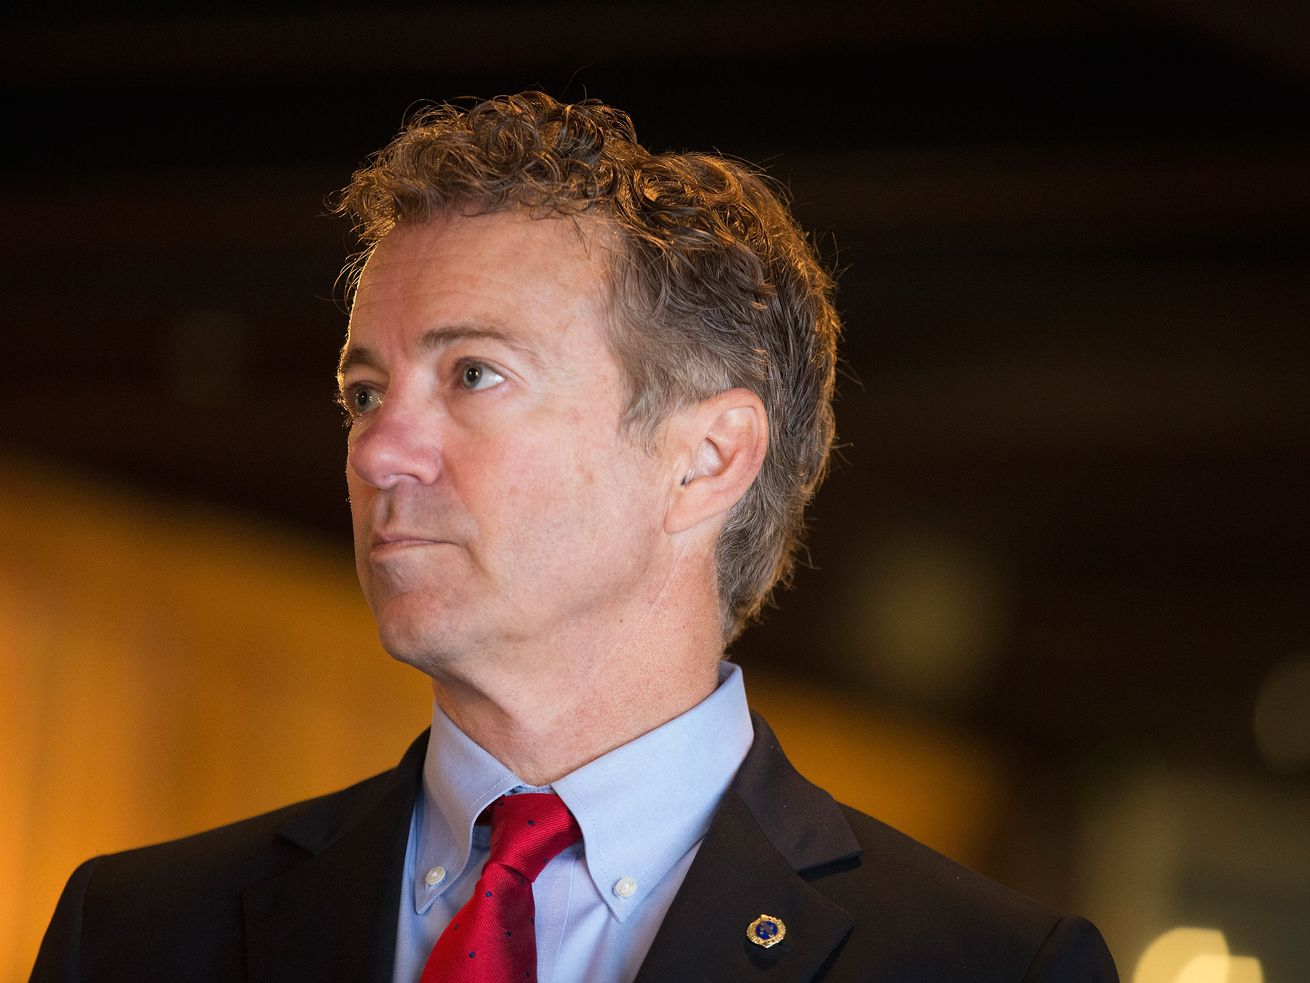 Senator Rand Paul (R-KY) speaks to guests at a campaign event at Bloomsbury Farm on April 25, 2015 in Atkins, Iowa.